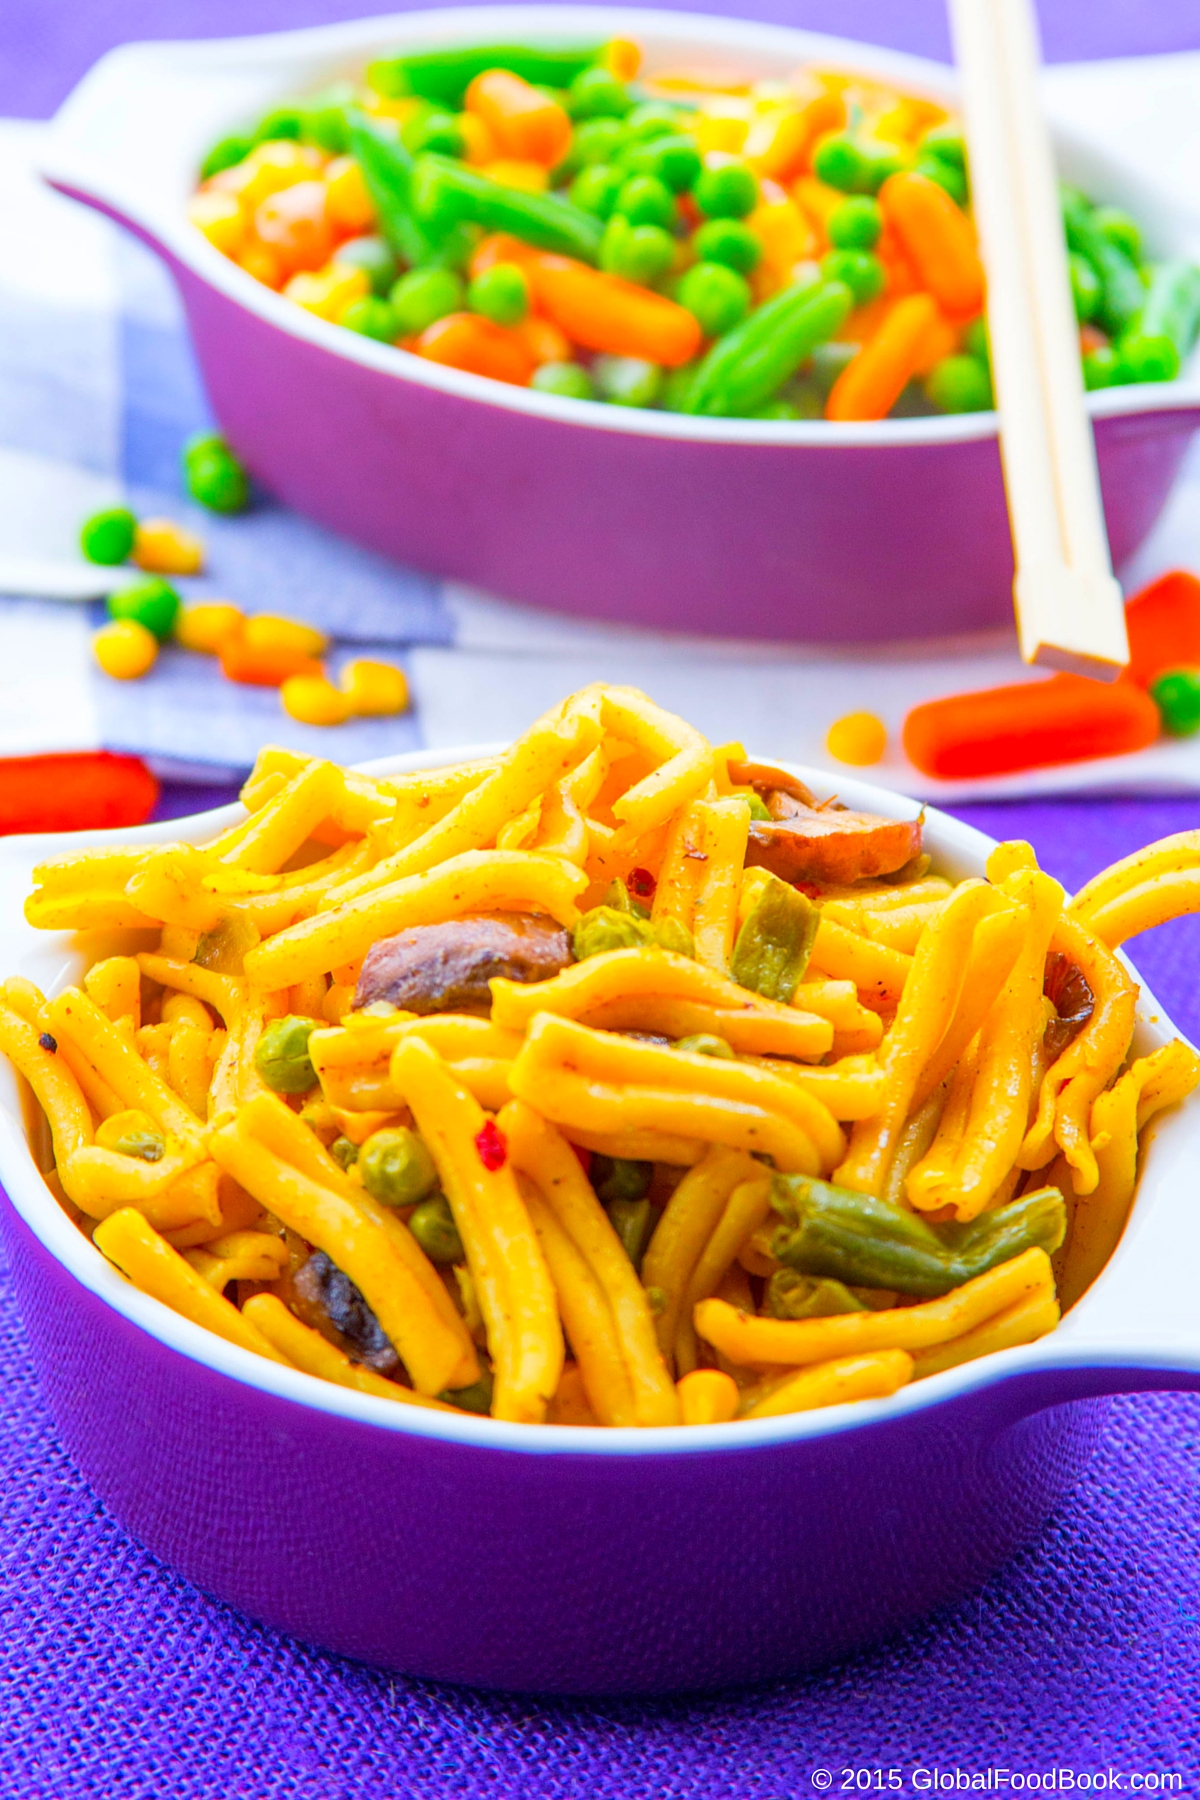 CASARECCE PASTA WITH VEGETABLES